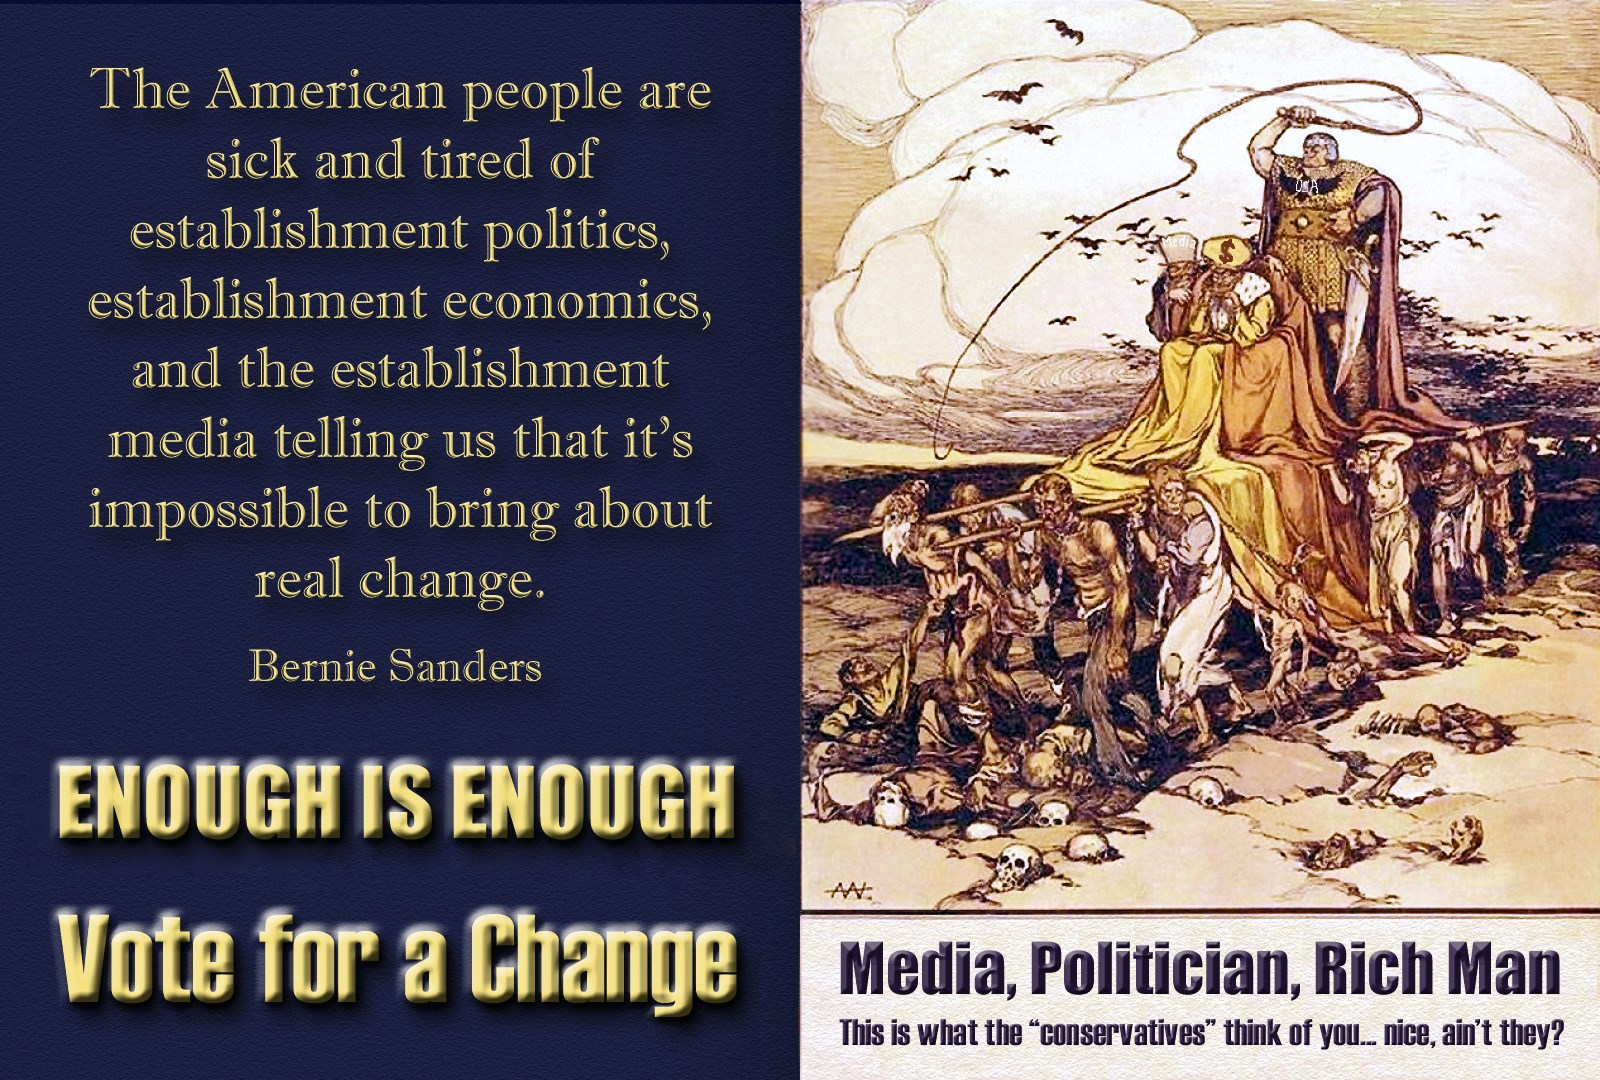 00 politician media rich man sanders